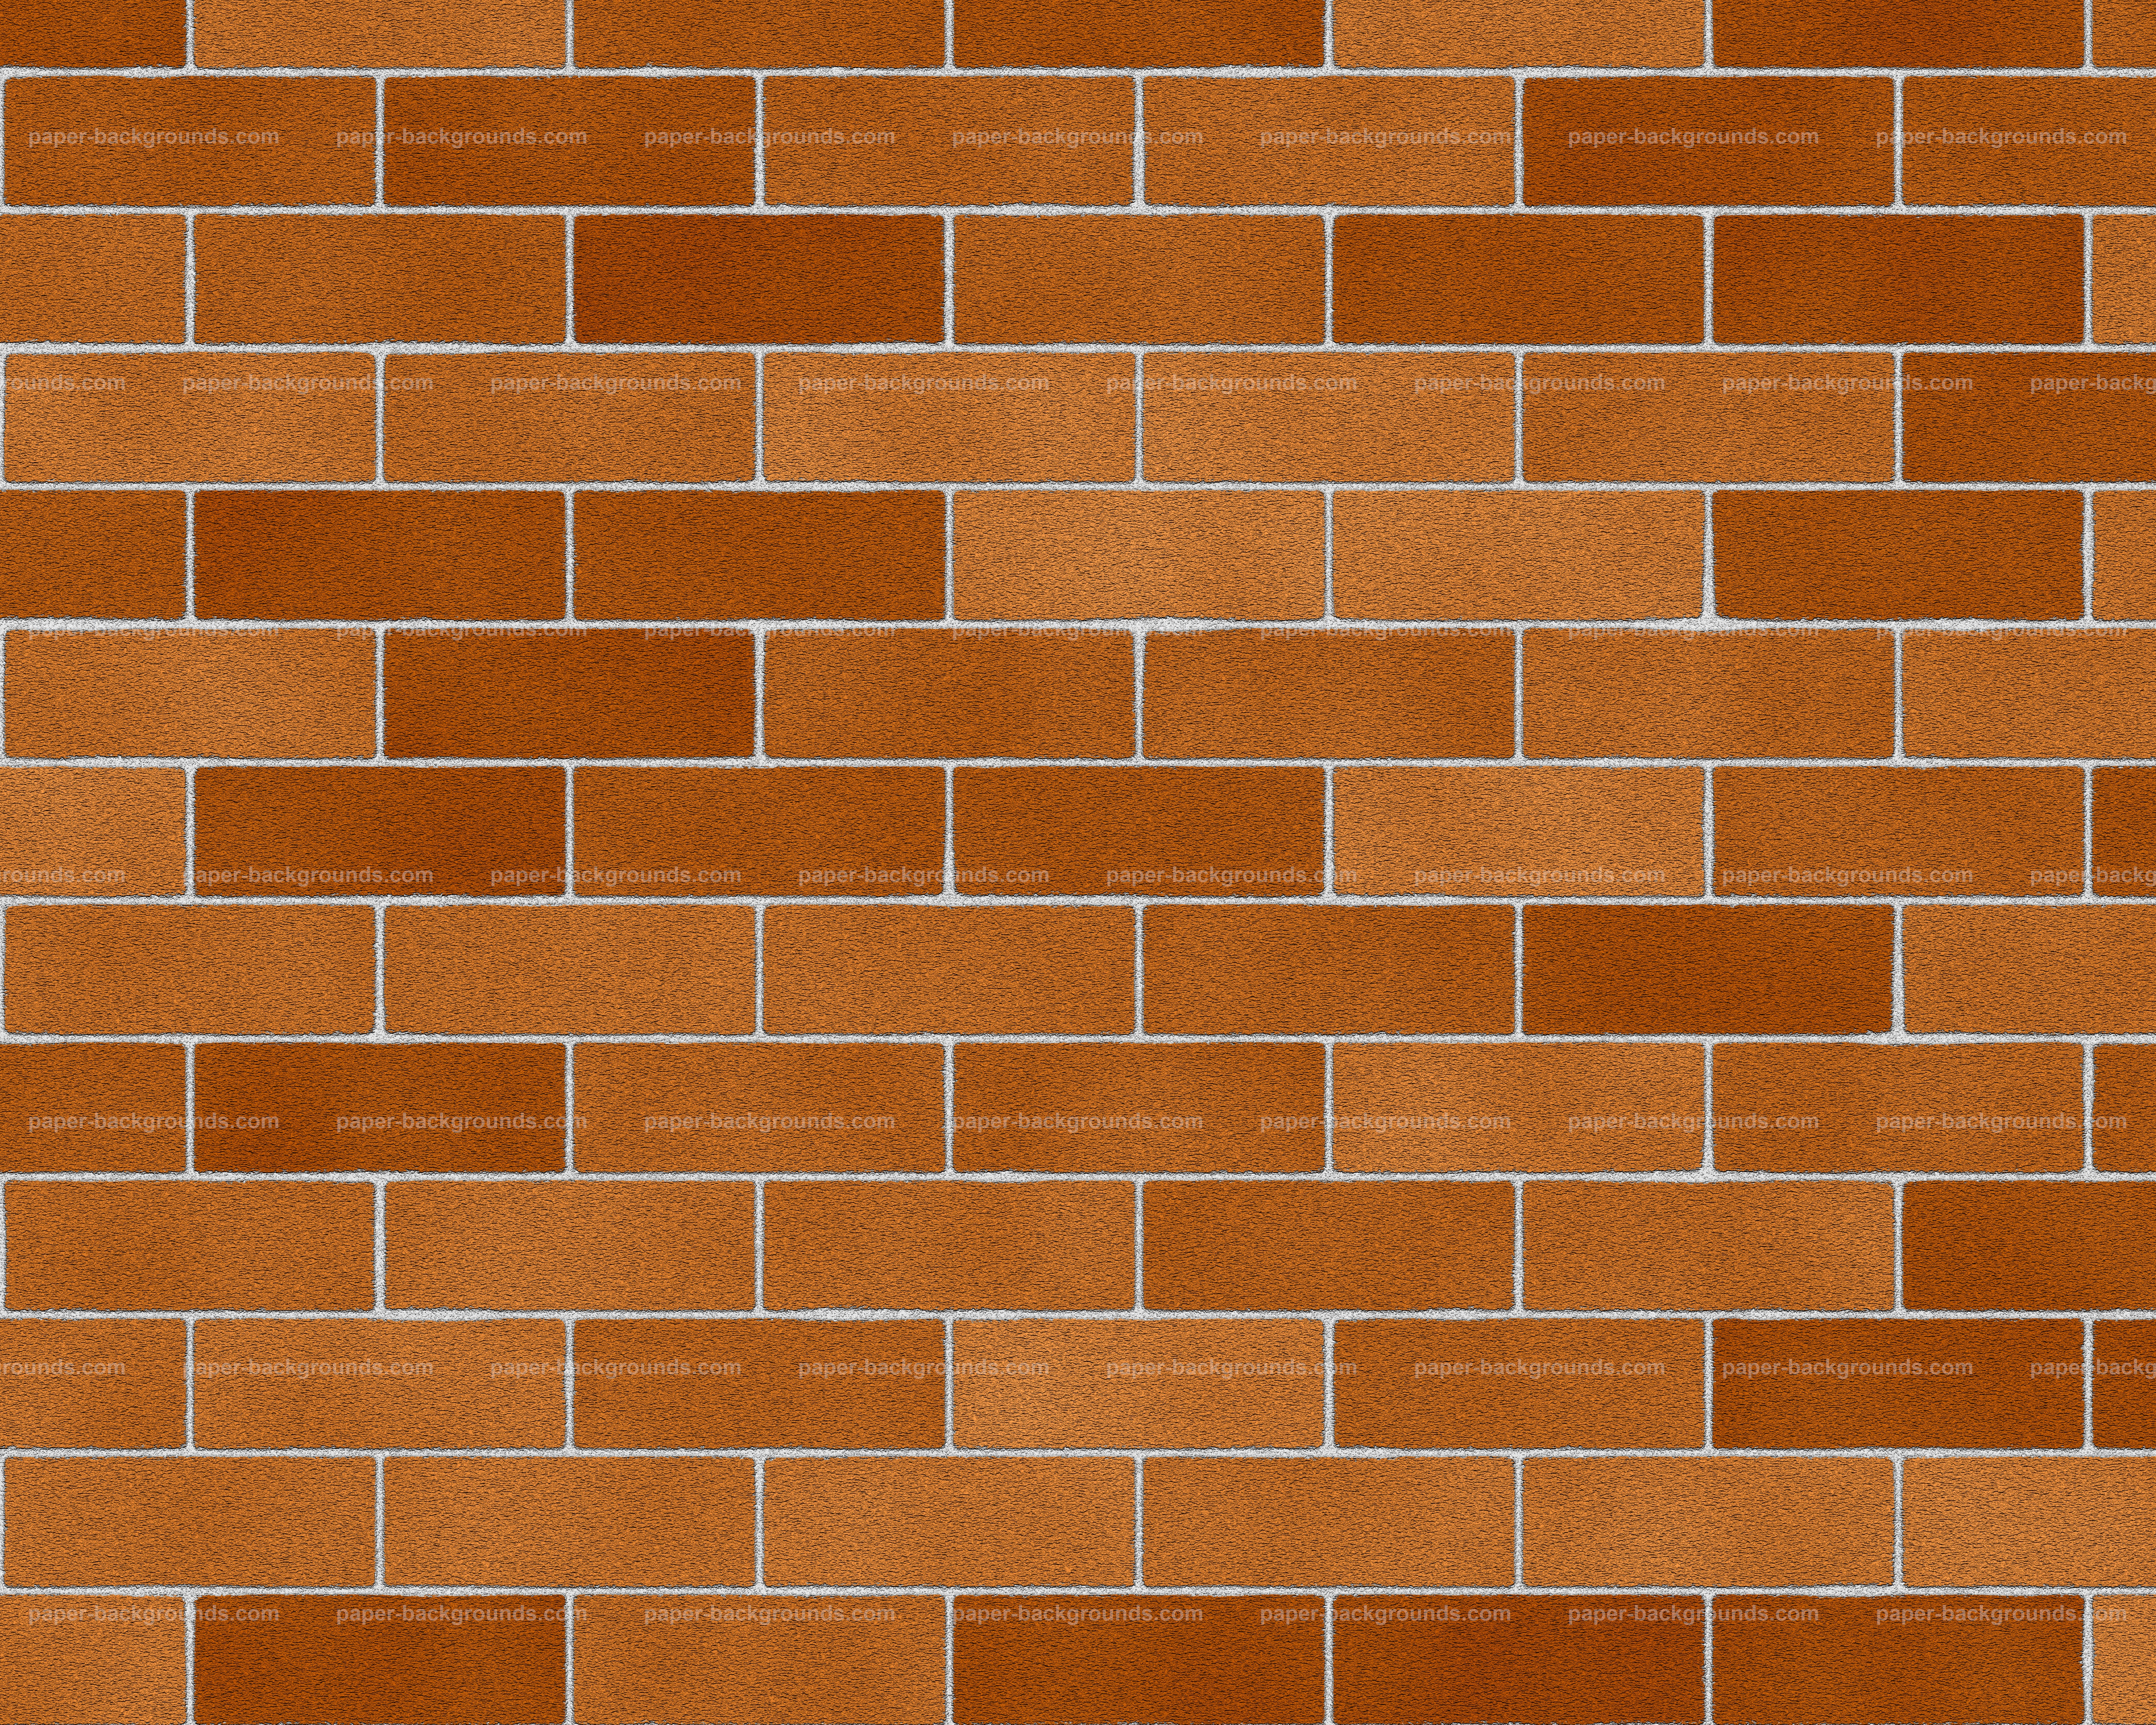 Paper Backgrounds Clean Red Brick Wall Texture Background High